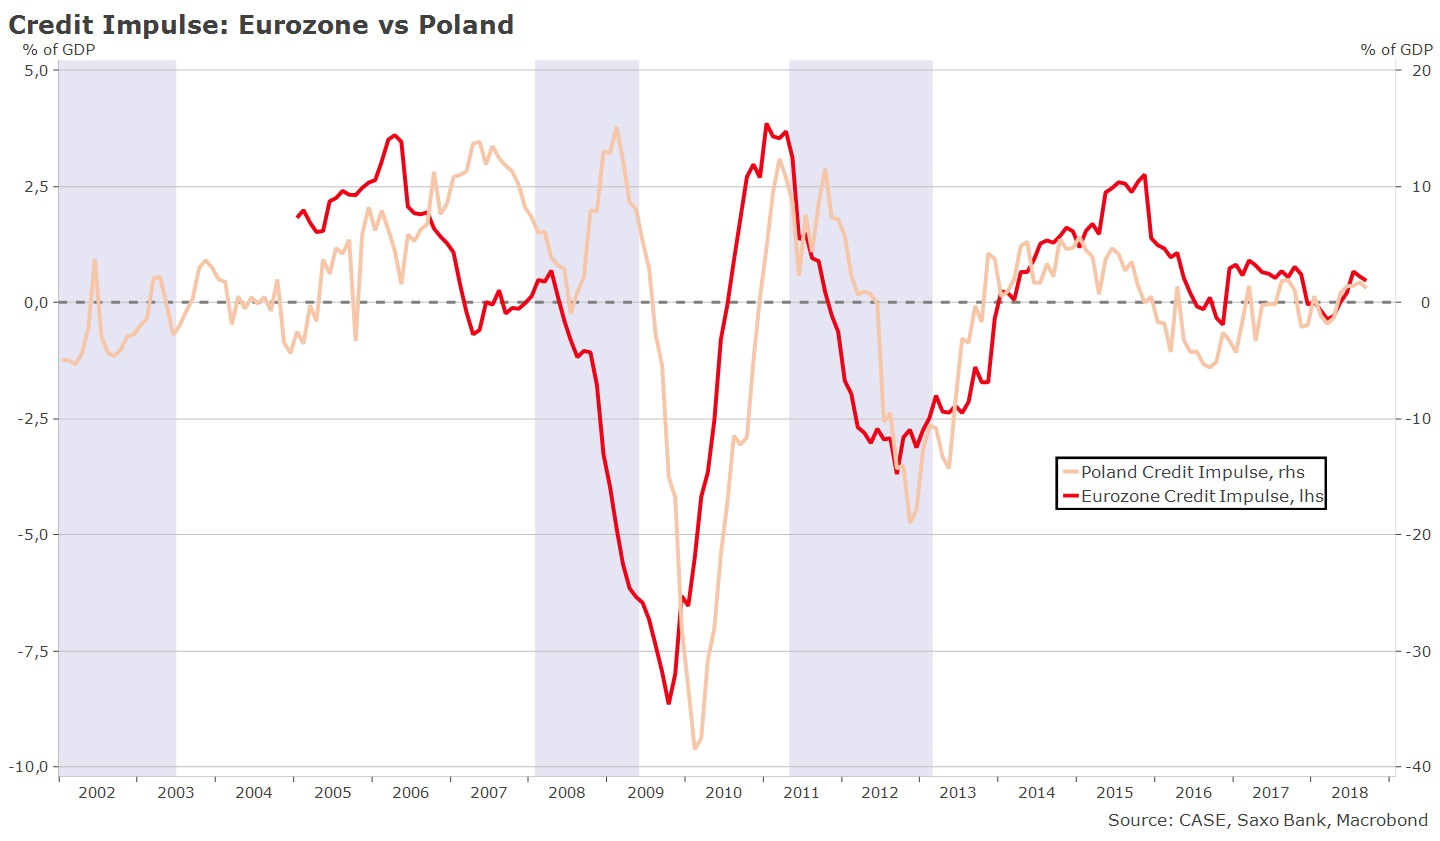 Credit Impulse Poland vs Eurozone